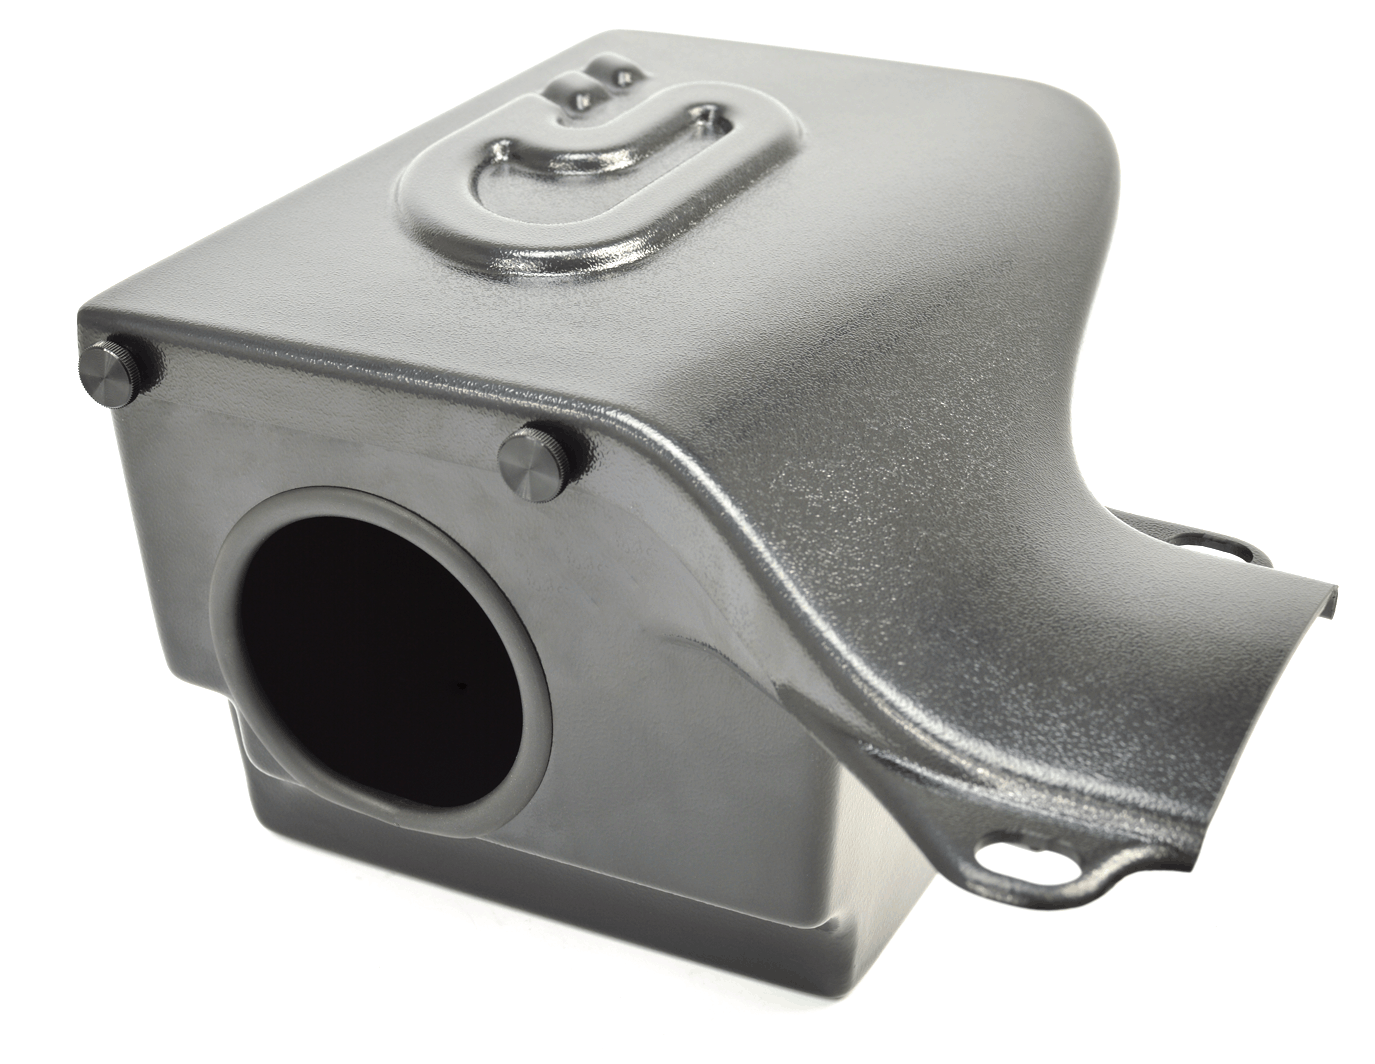 Designed to perfectly fit your Mazda 3 and your Mazda 6. Our cold air box is designed for easy install and easy filter maintenance.